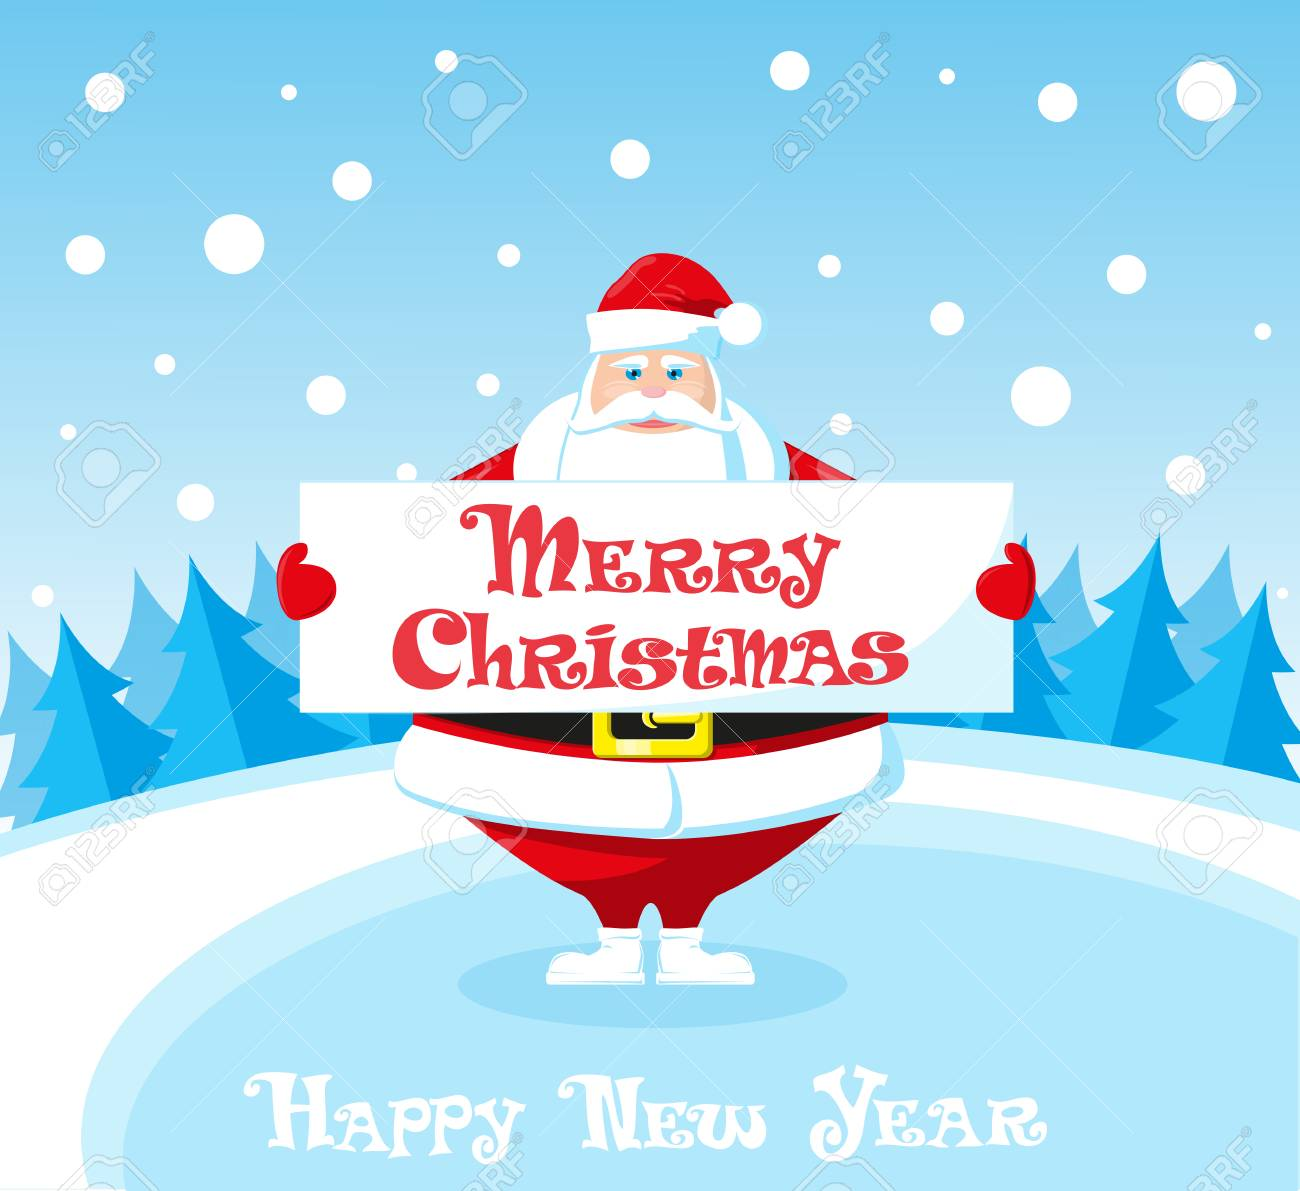 merry christmas and happy new year landscape cute santa claus royalty free cliparts vectors and stock illustration image 64438293 123rf com